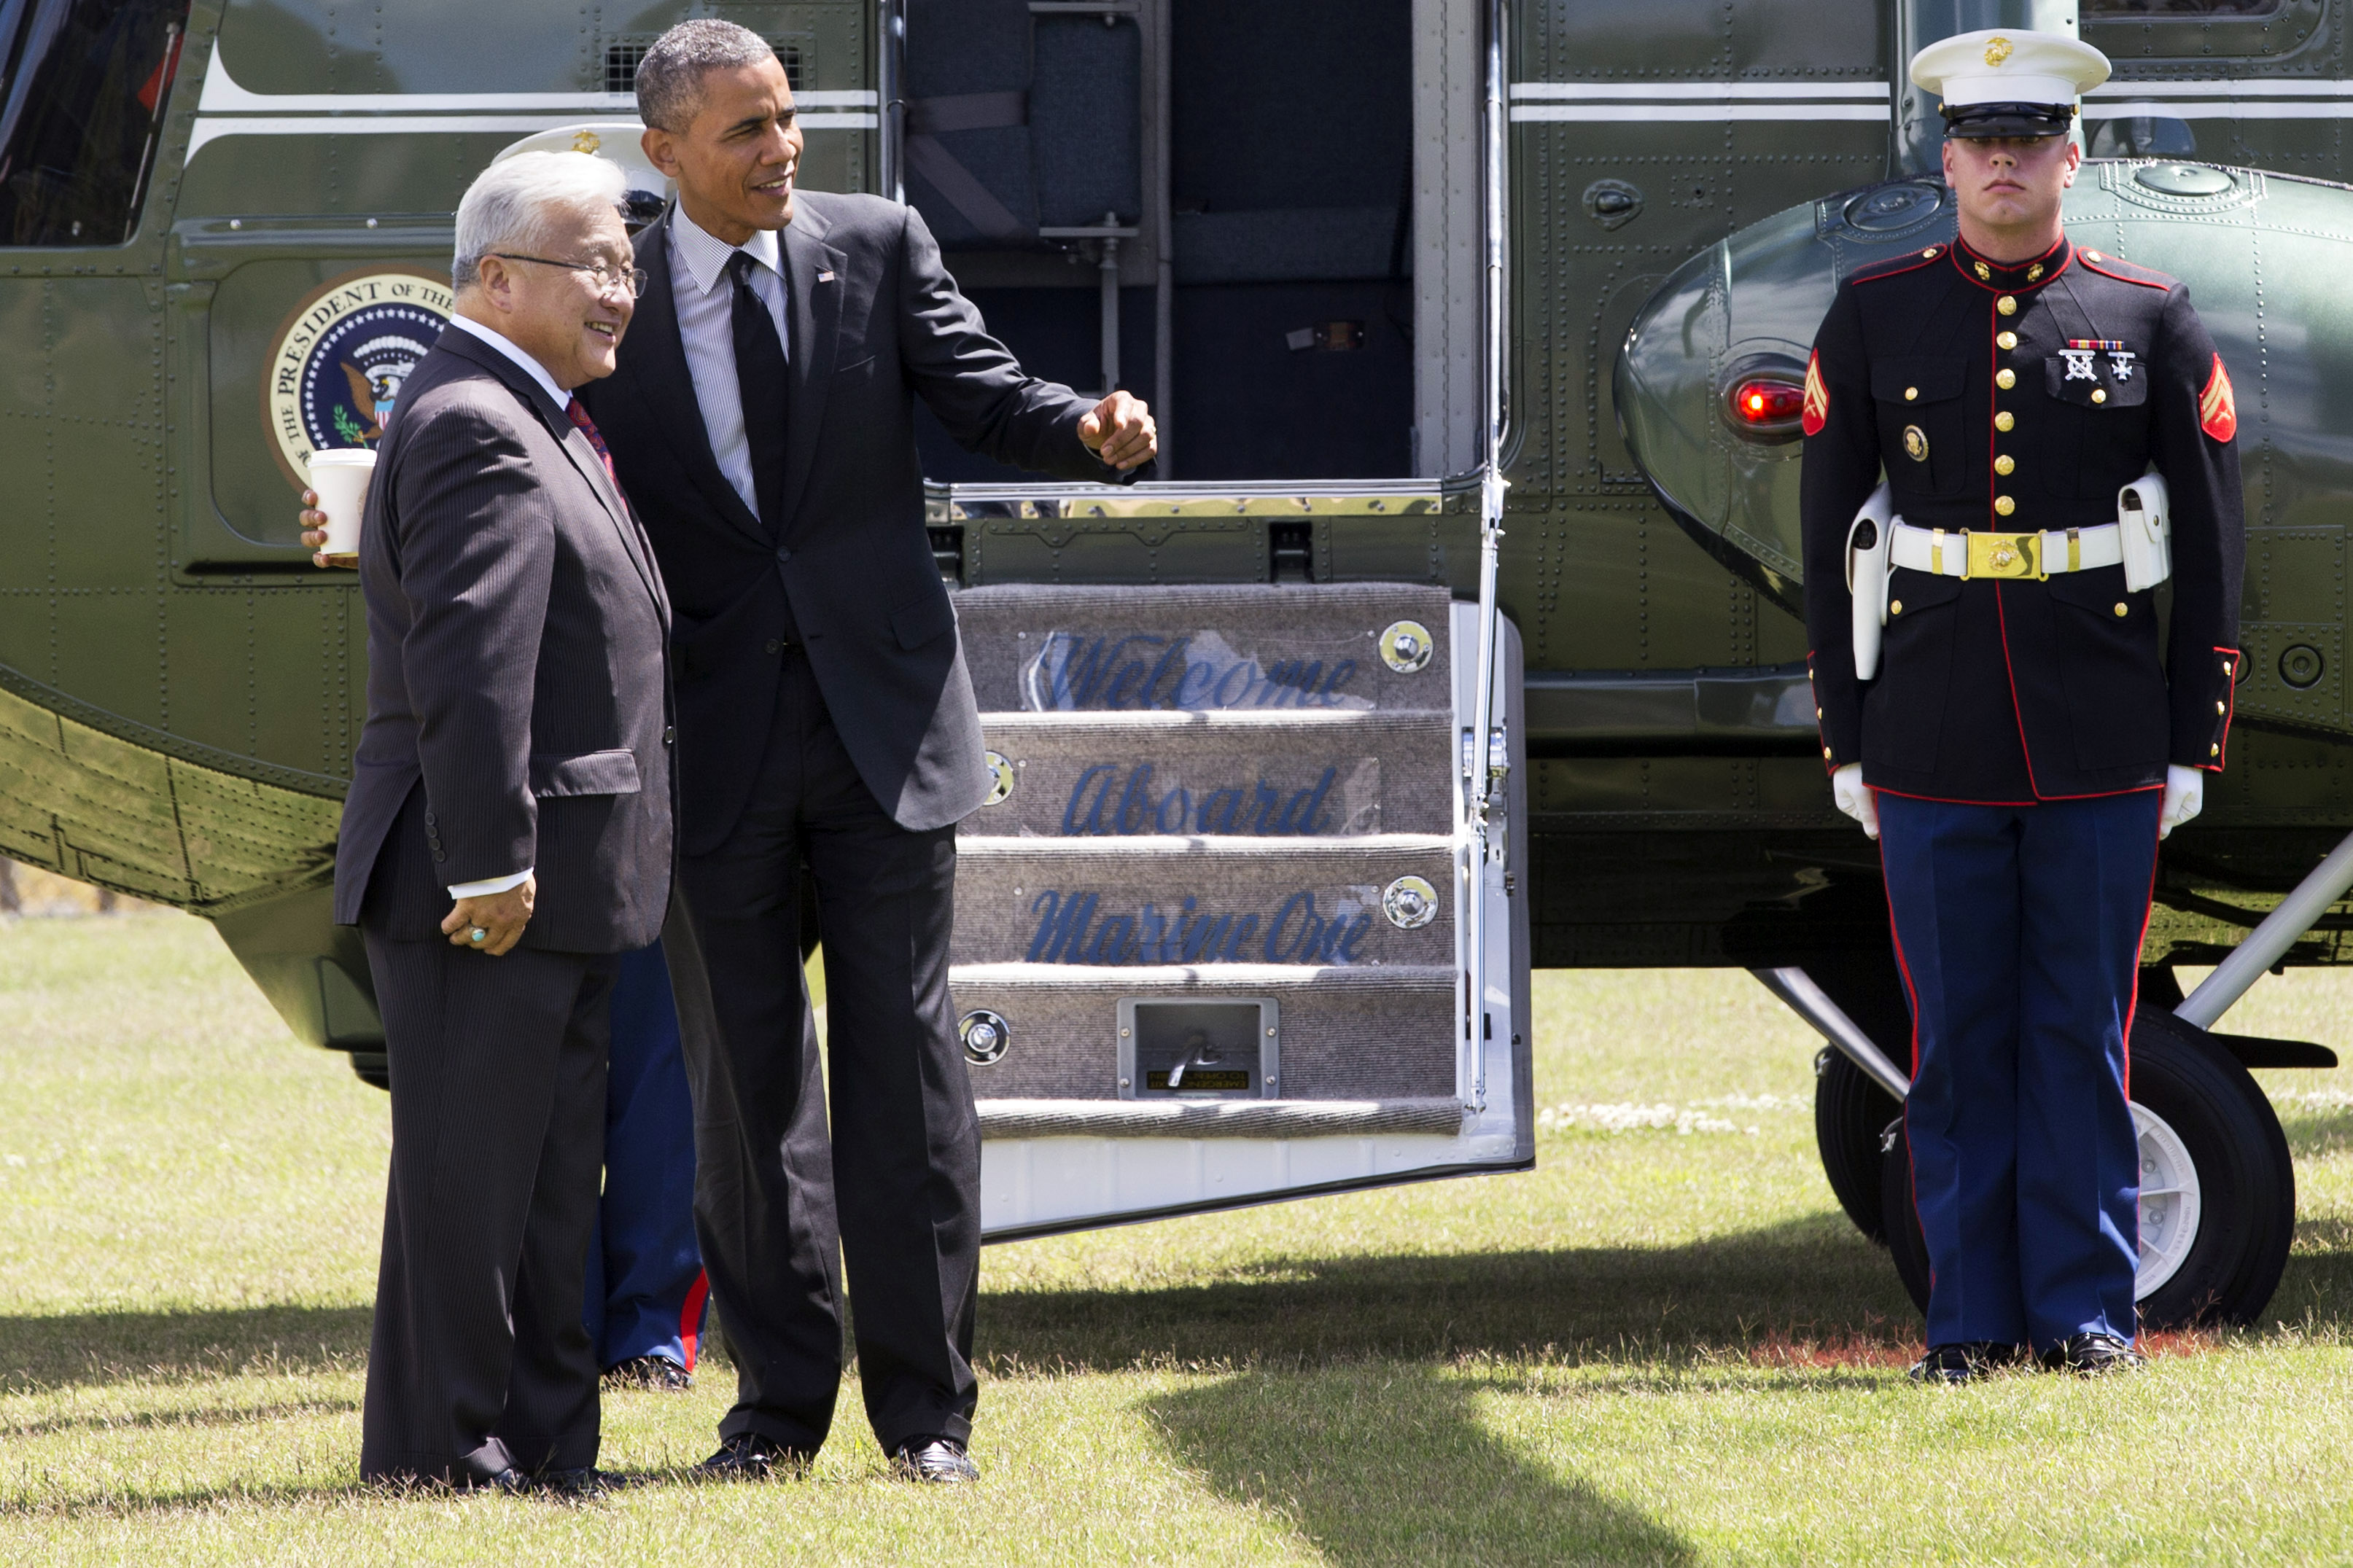 President Barack Obama is greeted by Rep. Mike Honda, D-Calif., as the president arrives in Los Altos Hills, Calif., where he will attend a fundraising event Wednesday, July 23, 2014, during his three-day West Coast trip to Seattle, San Francisco and Los Angeles.